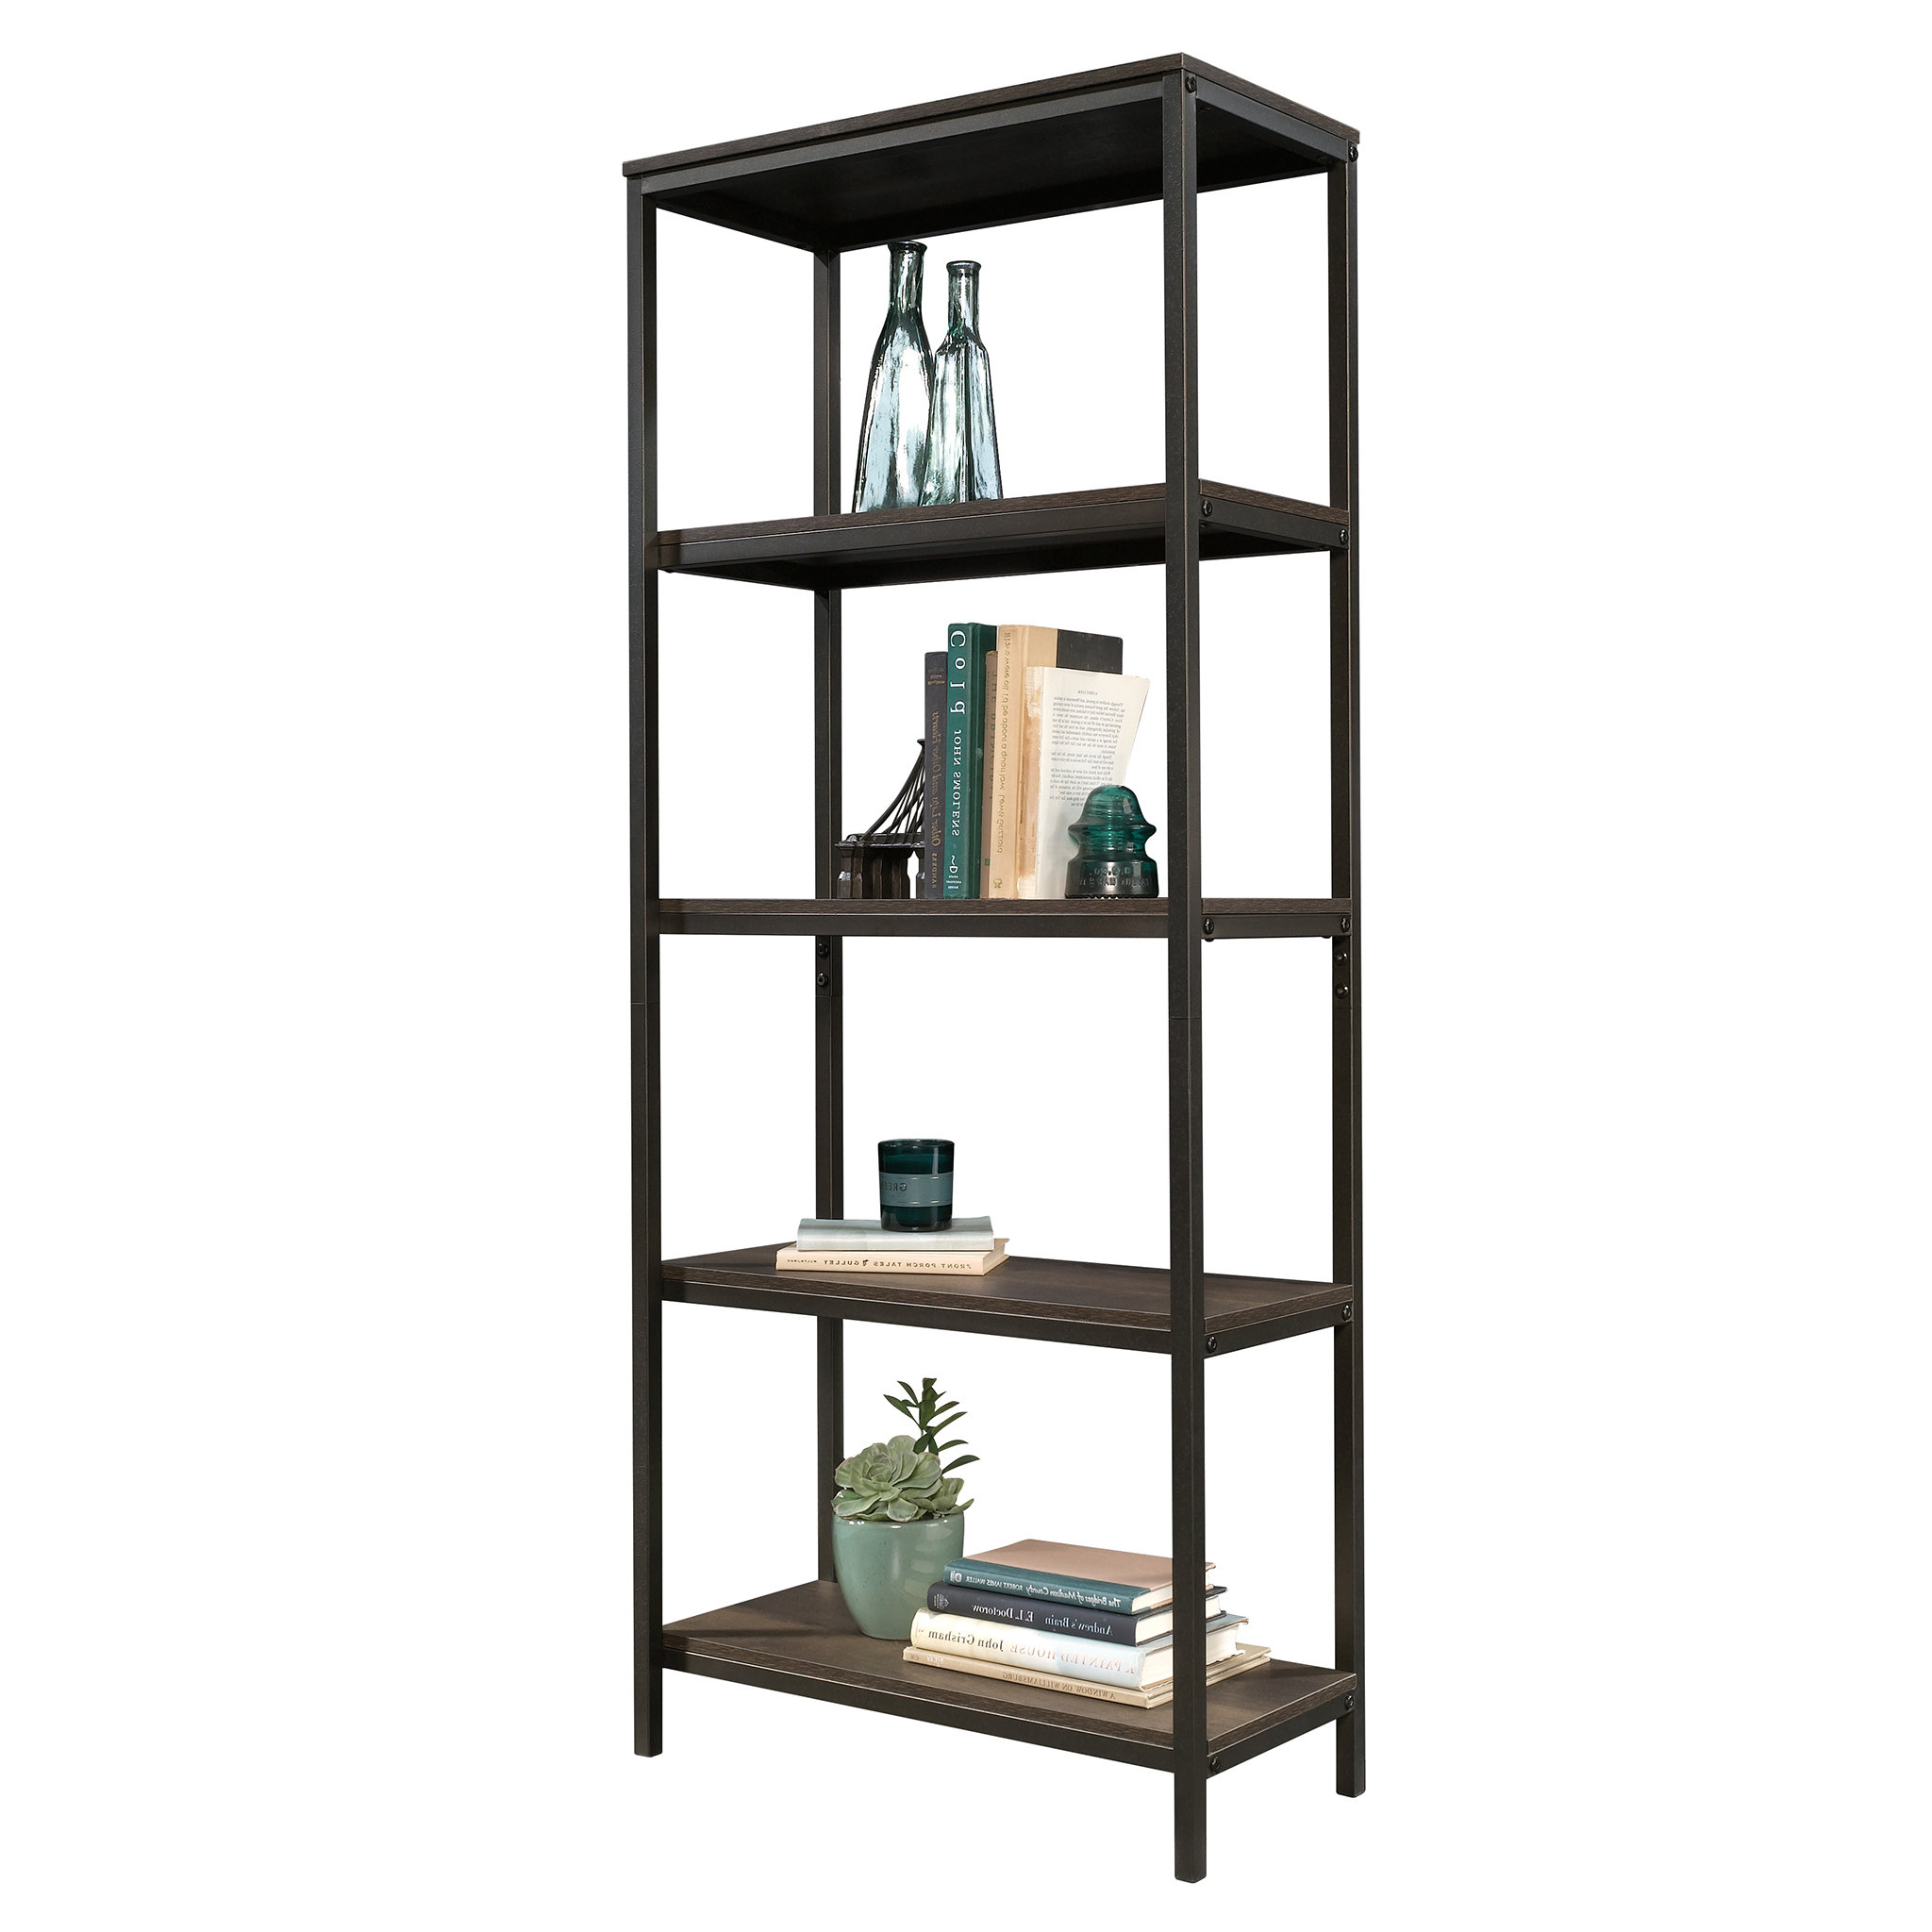 Most Recent Ermont Etagere Bookcase Intended For Ermont Etagere Bookcases (View 3 of 20)